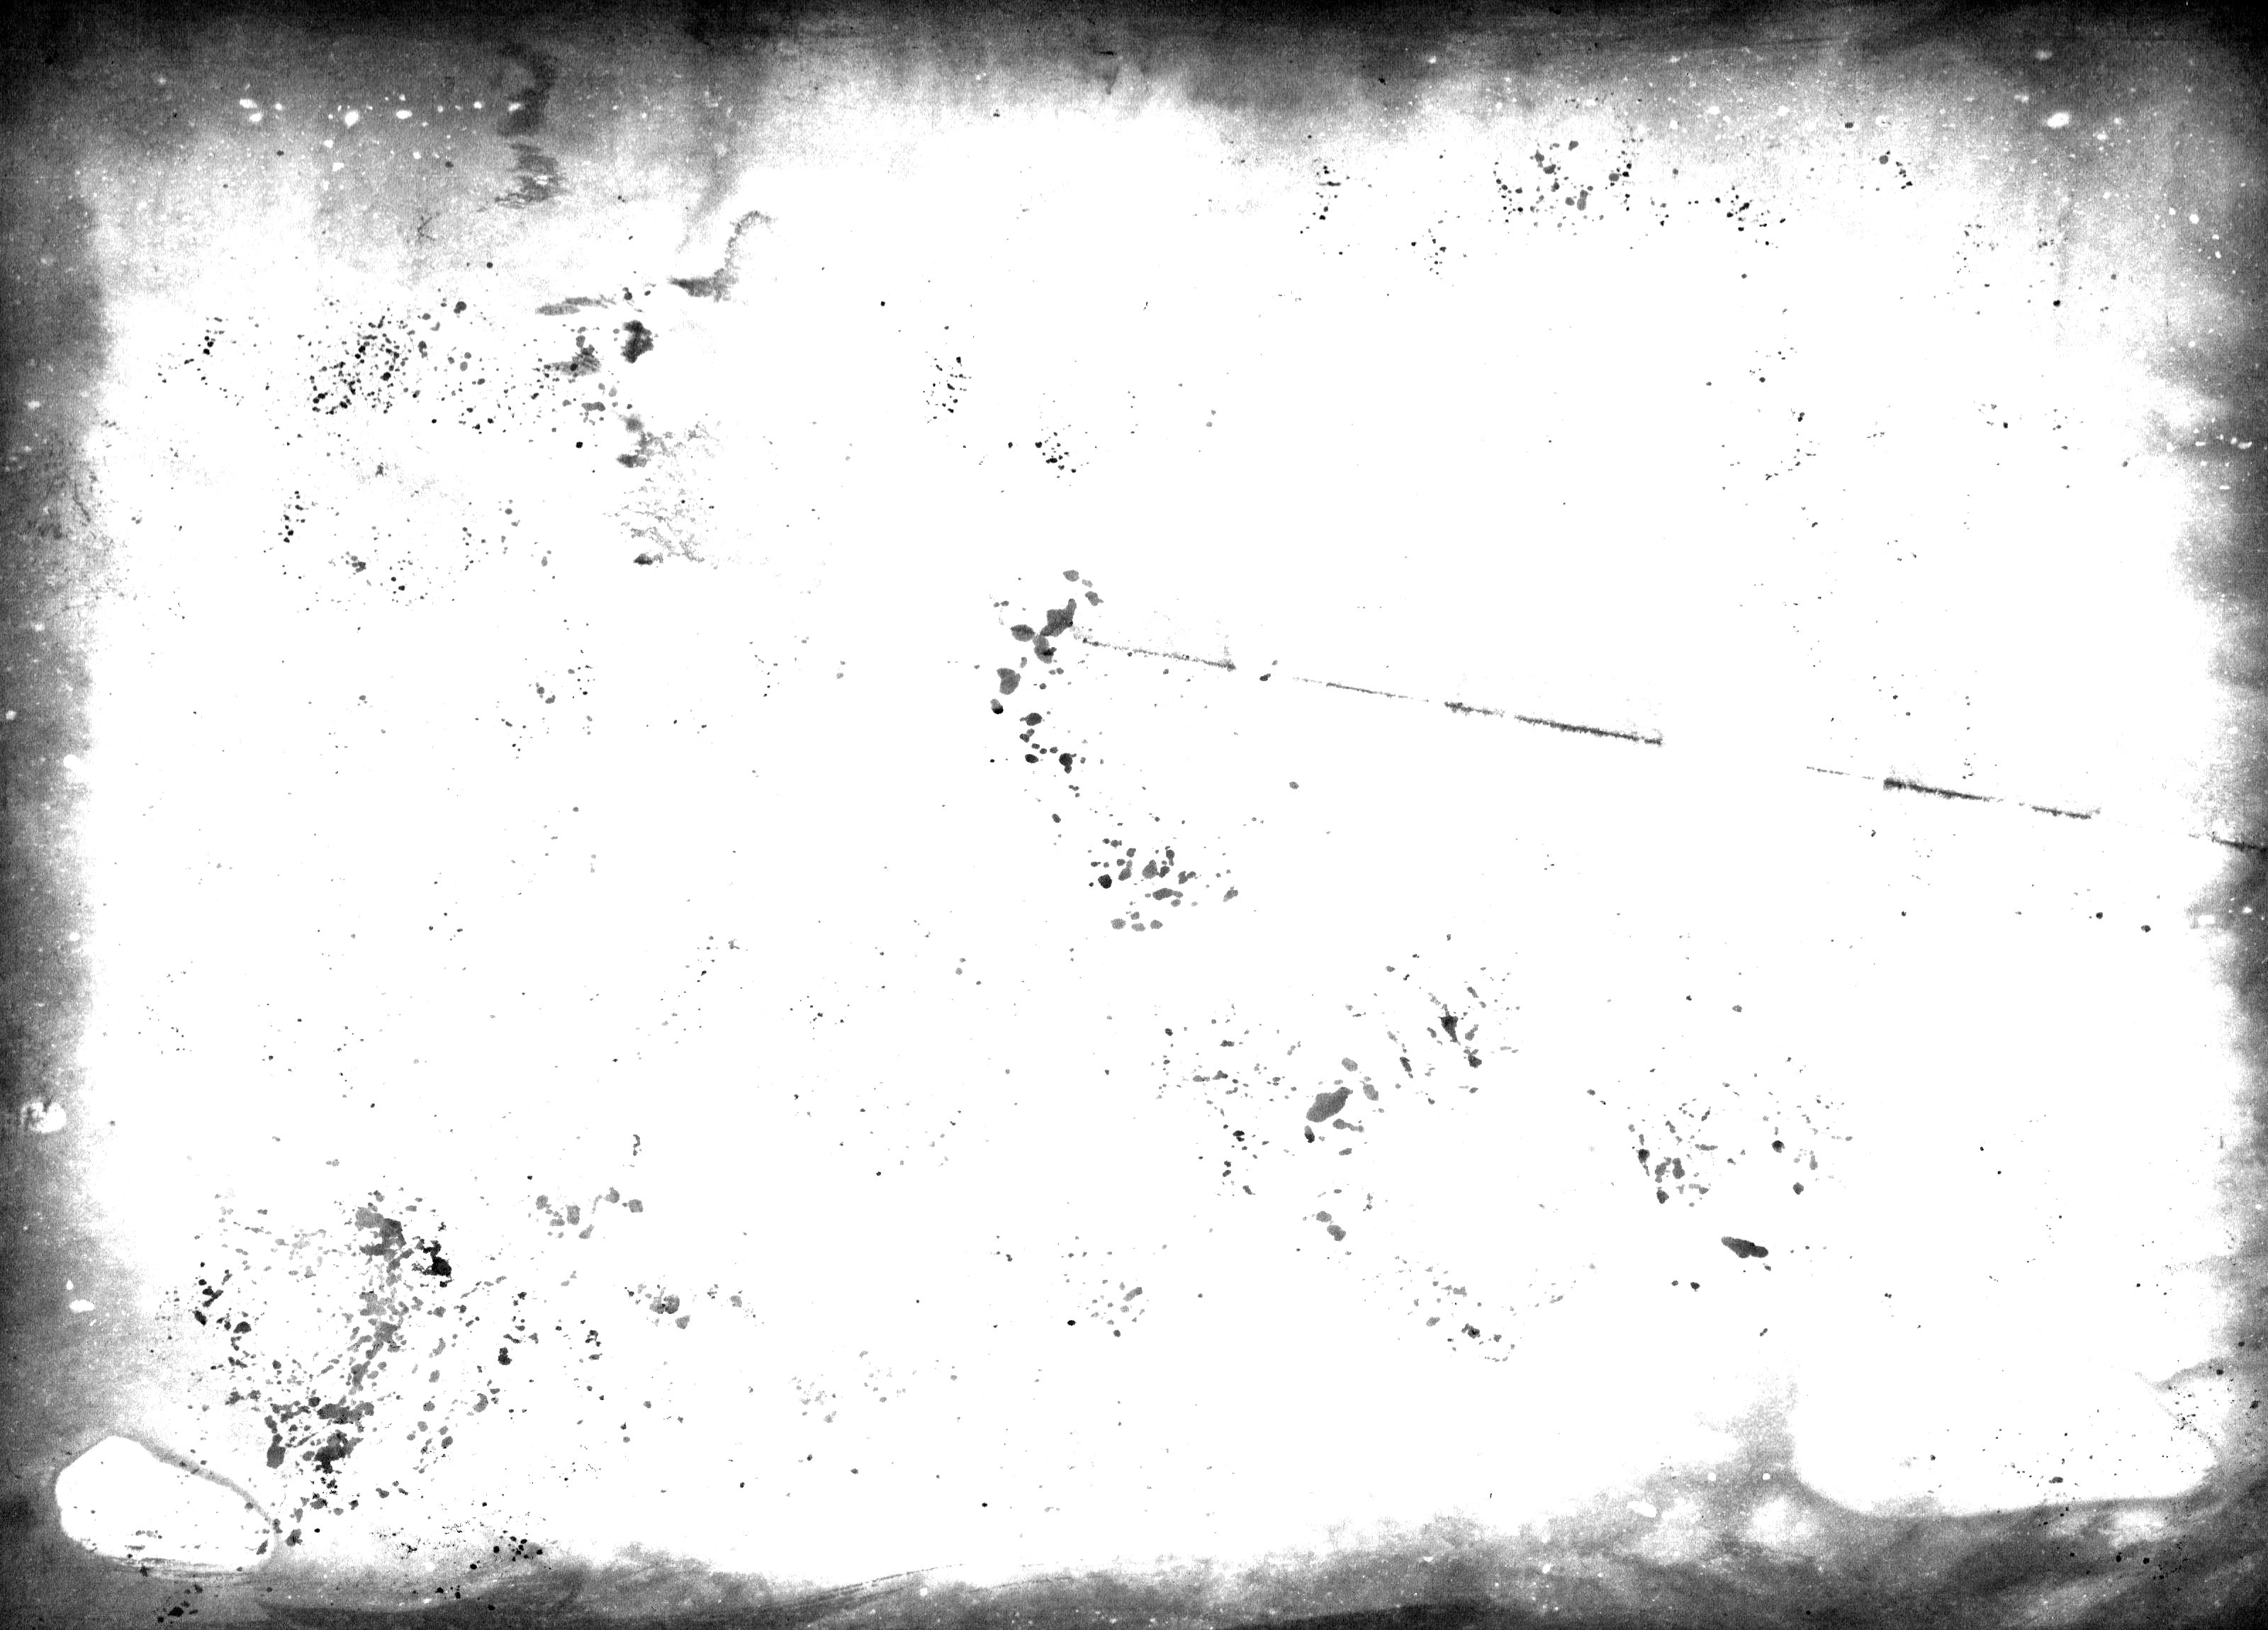 Free Download Grunge Texture Black And White 6